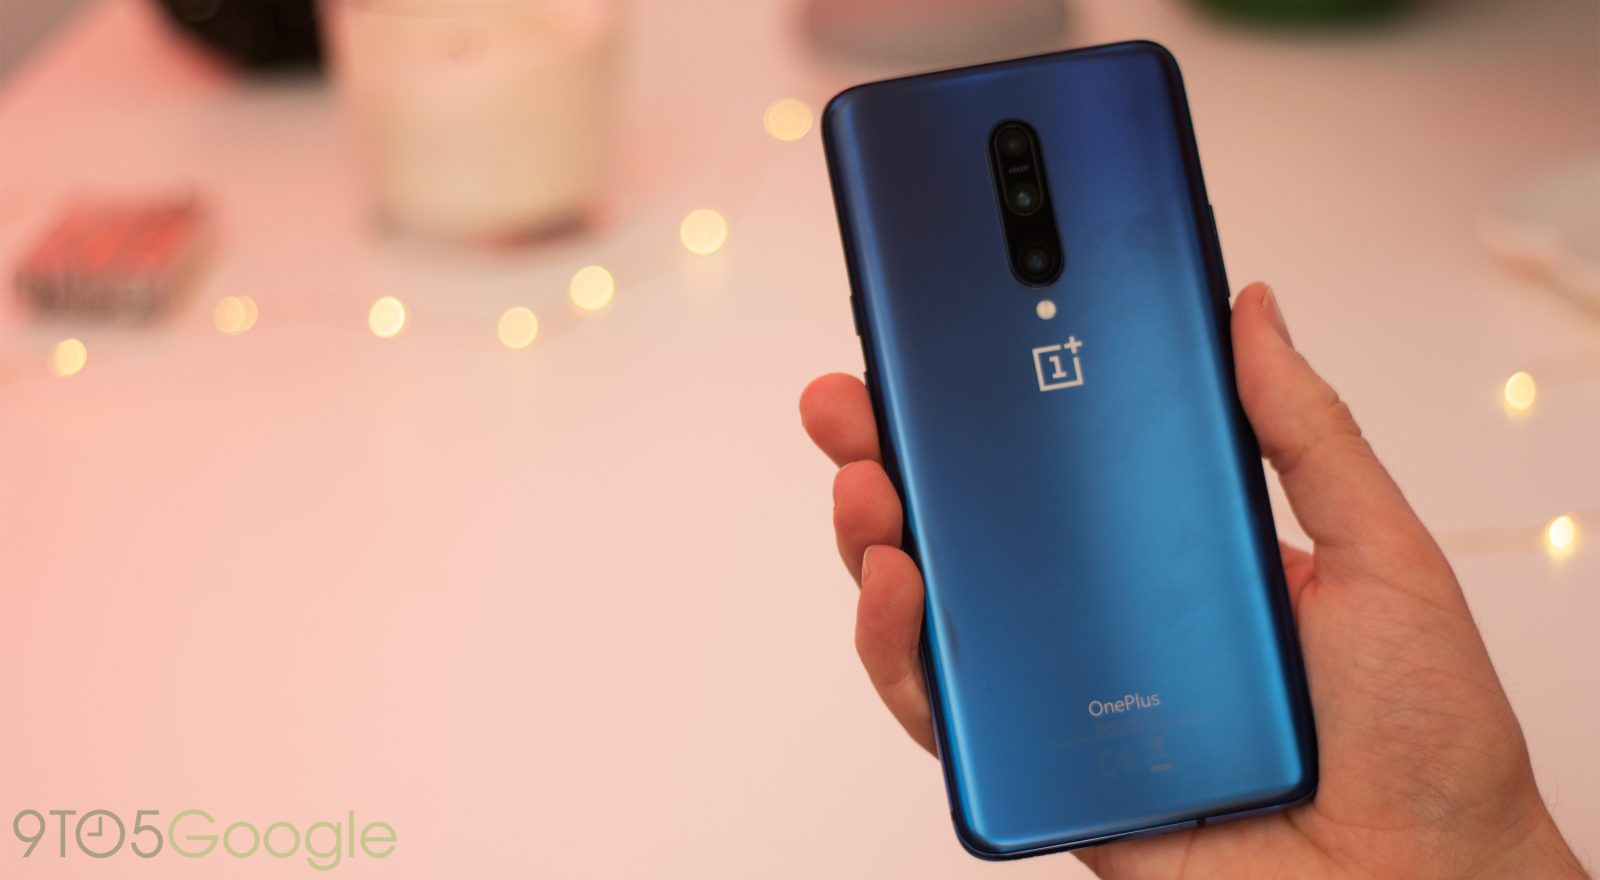 OnePlus 7 Pro models receiving day one update to OxygenOS 9.5.2 w/ DC Dimming feature, April patch